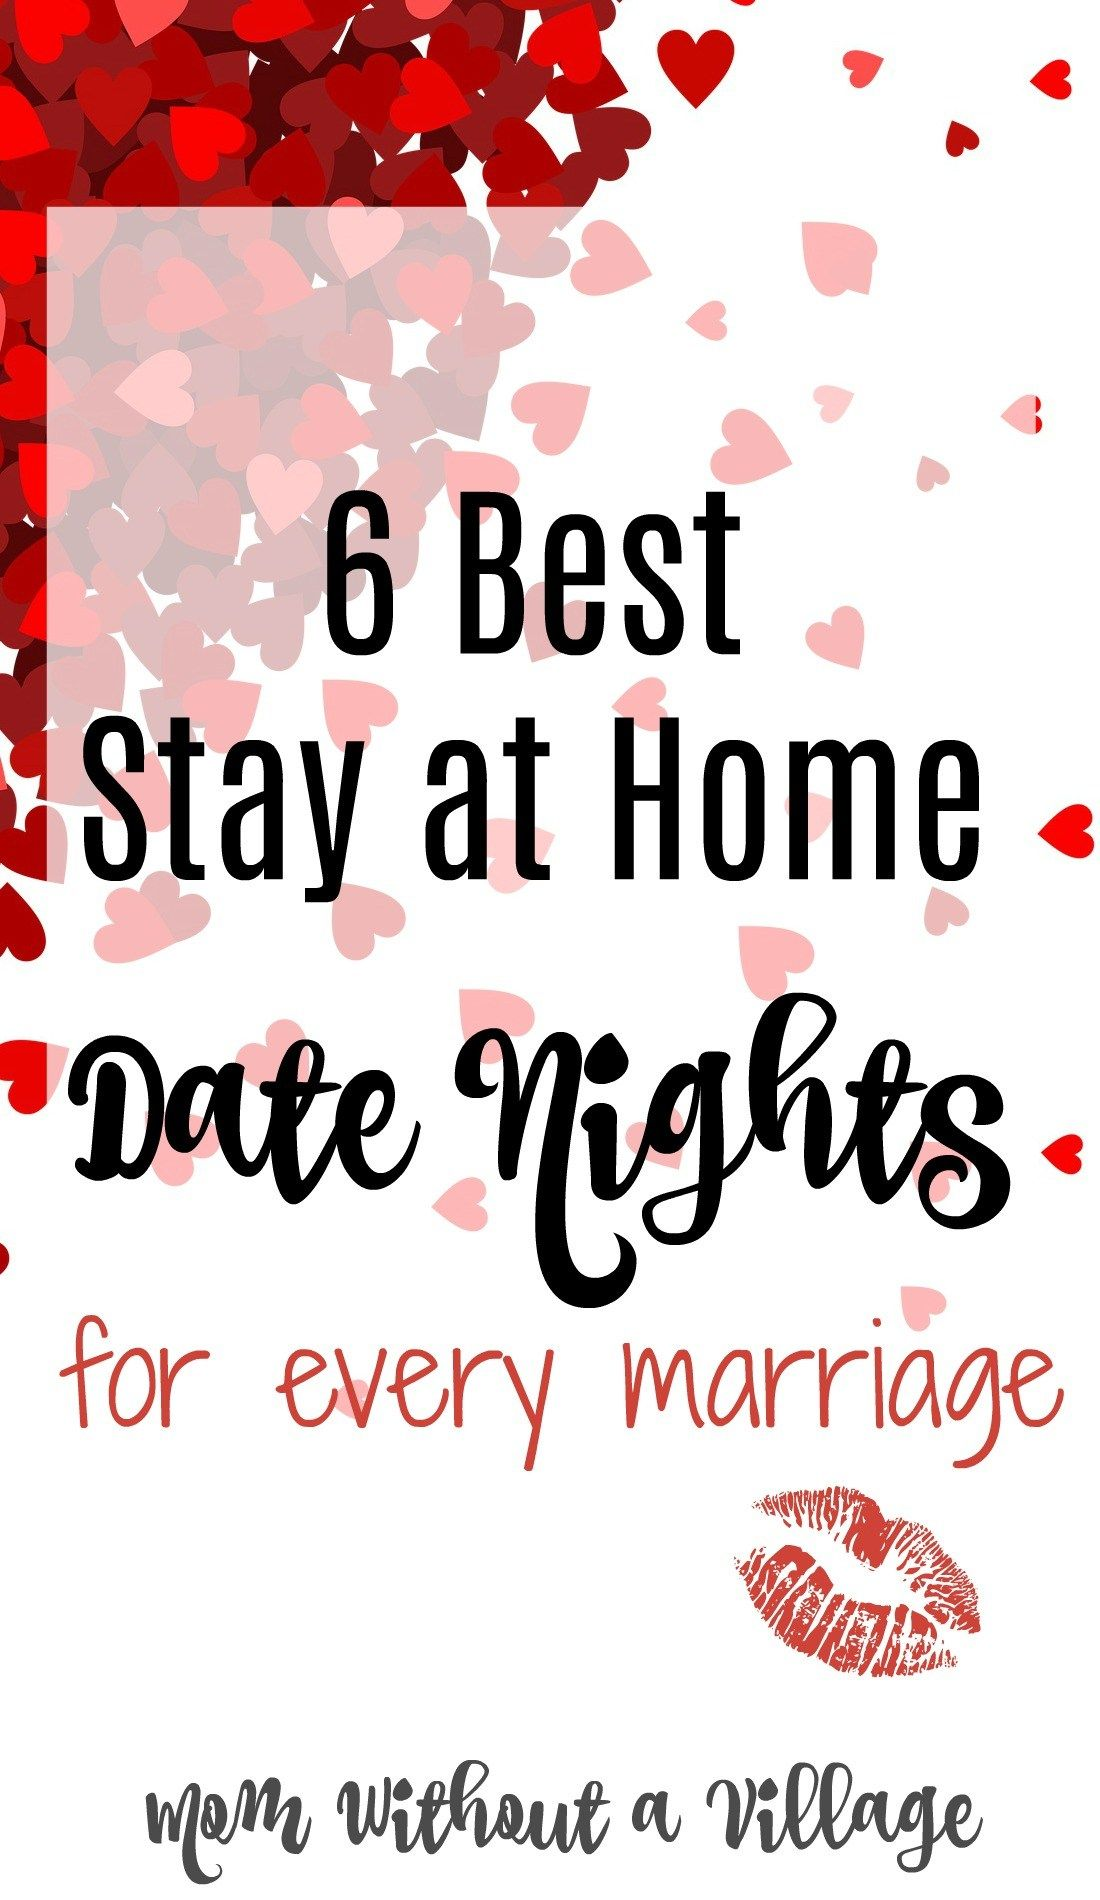 How to Have a Date Night at Home | Relationships, Parents and Mom hacks